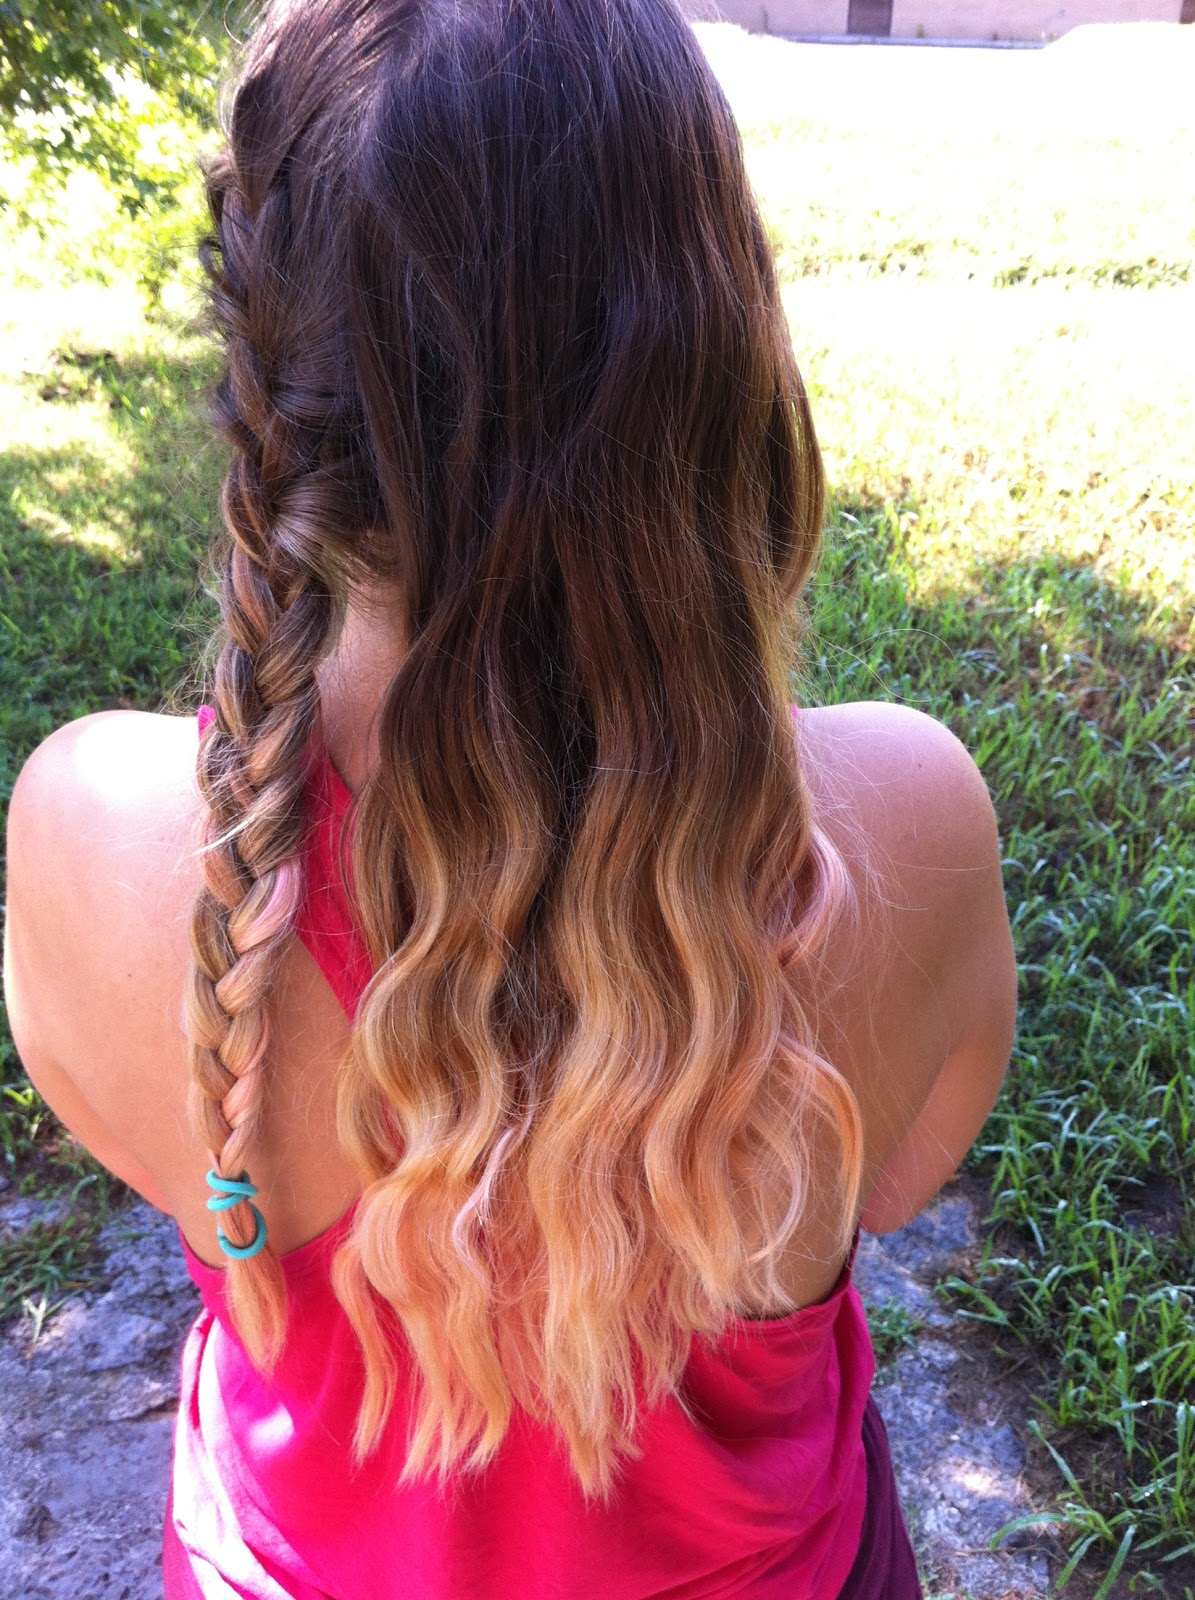 sleep ON IT: FRENCH BRAIDS TO BEACH WAVES